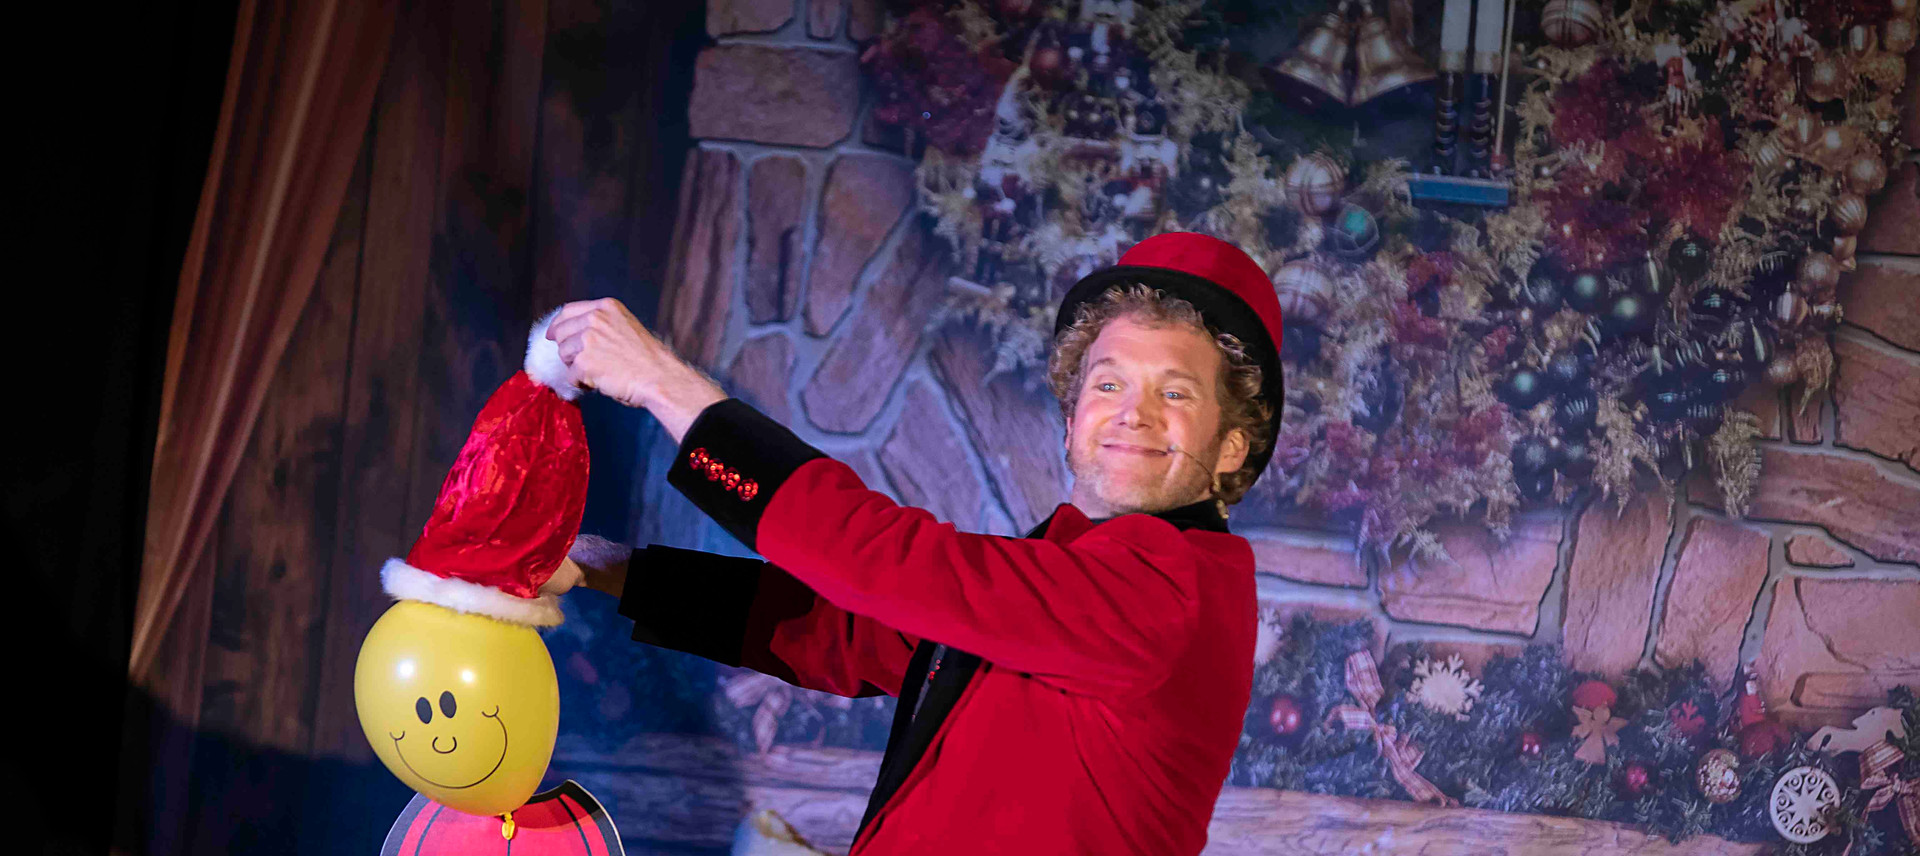 Magic Christmas Show Voorstelling Kerst